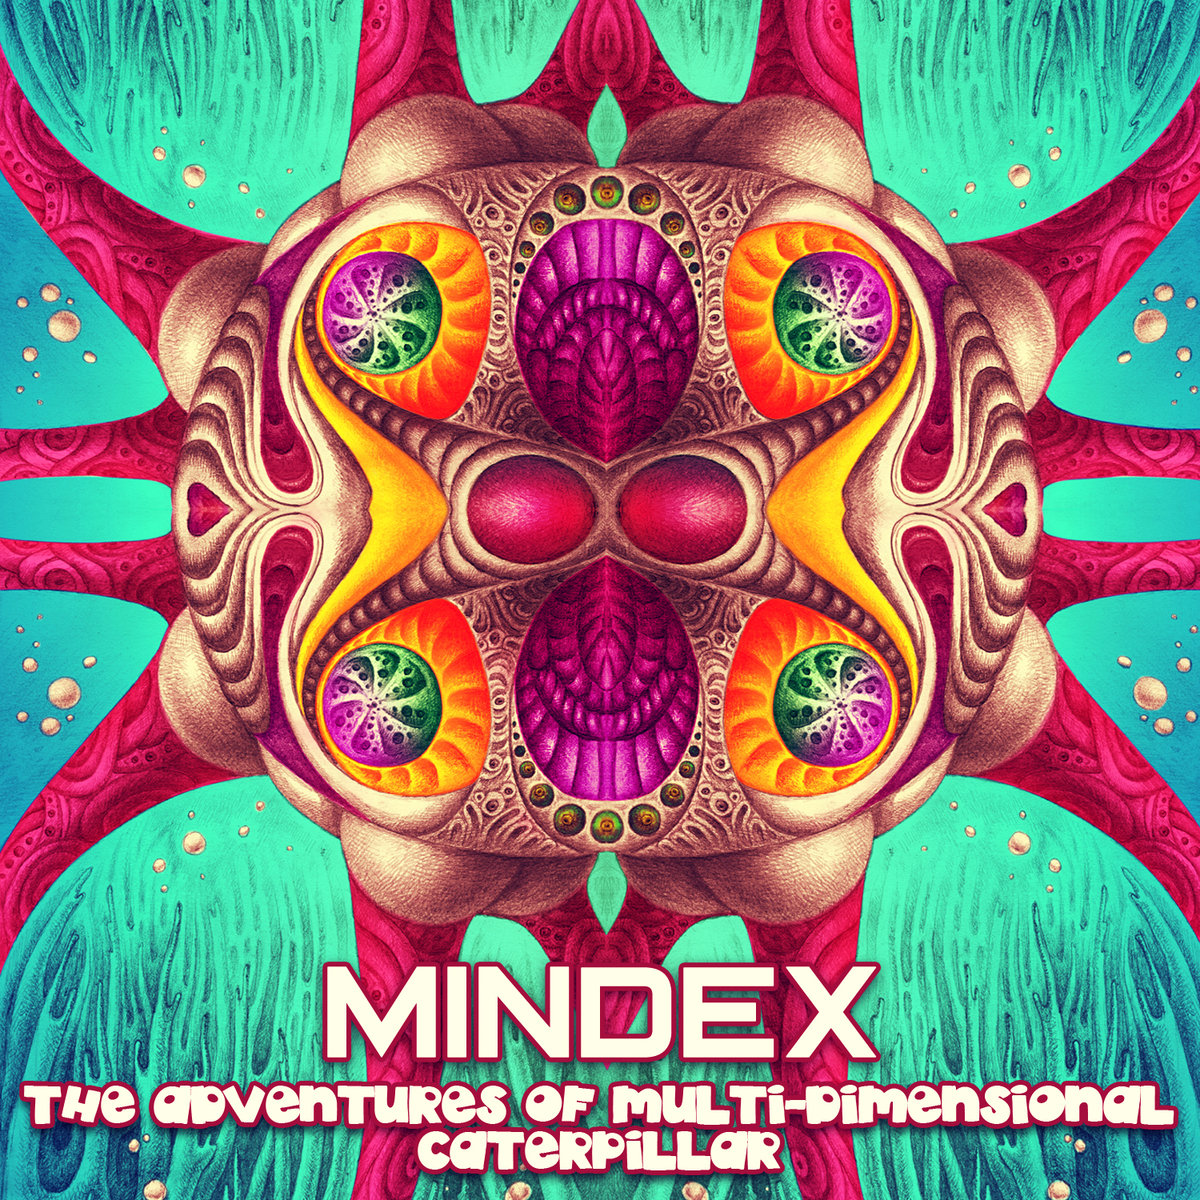 Mindex - Funky Monkey @ 'The Adventures of Multi-Dimensional Caterpillar' album (drum & bass, electronic)